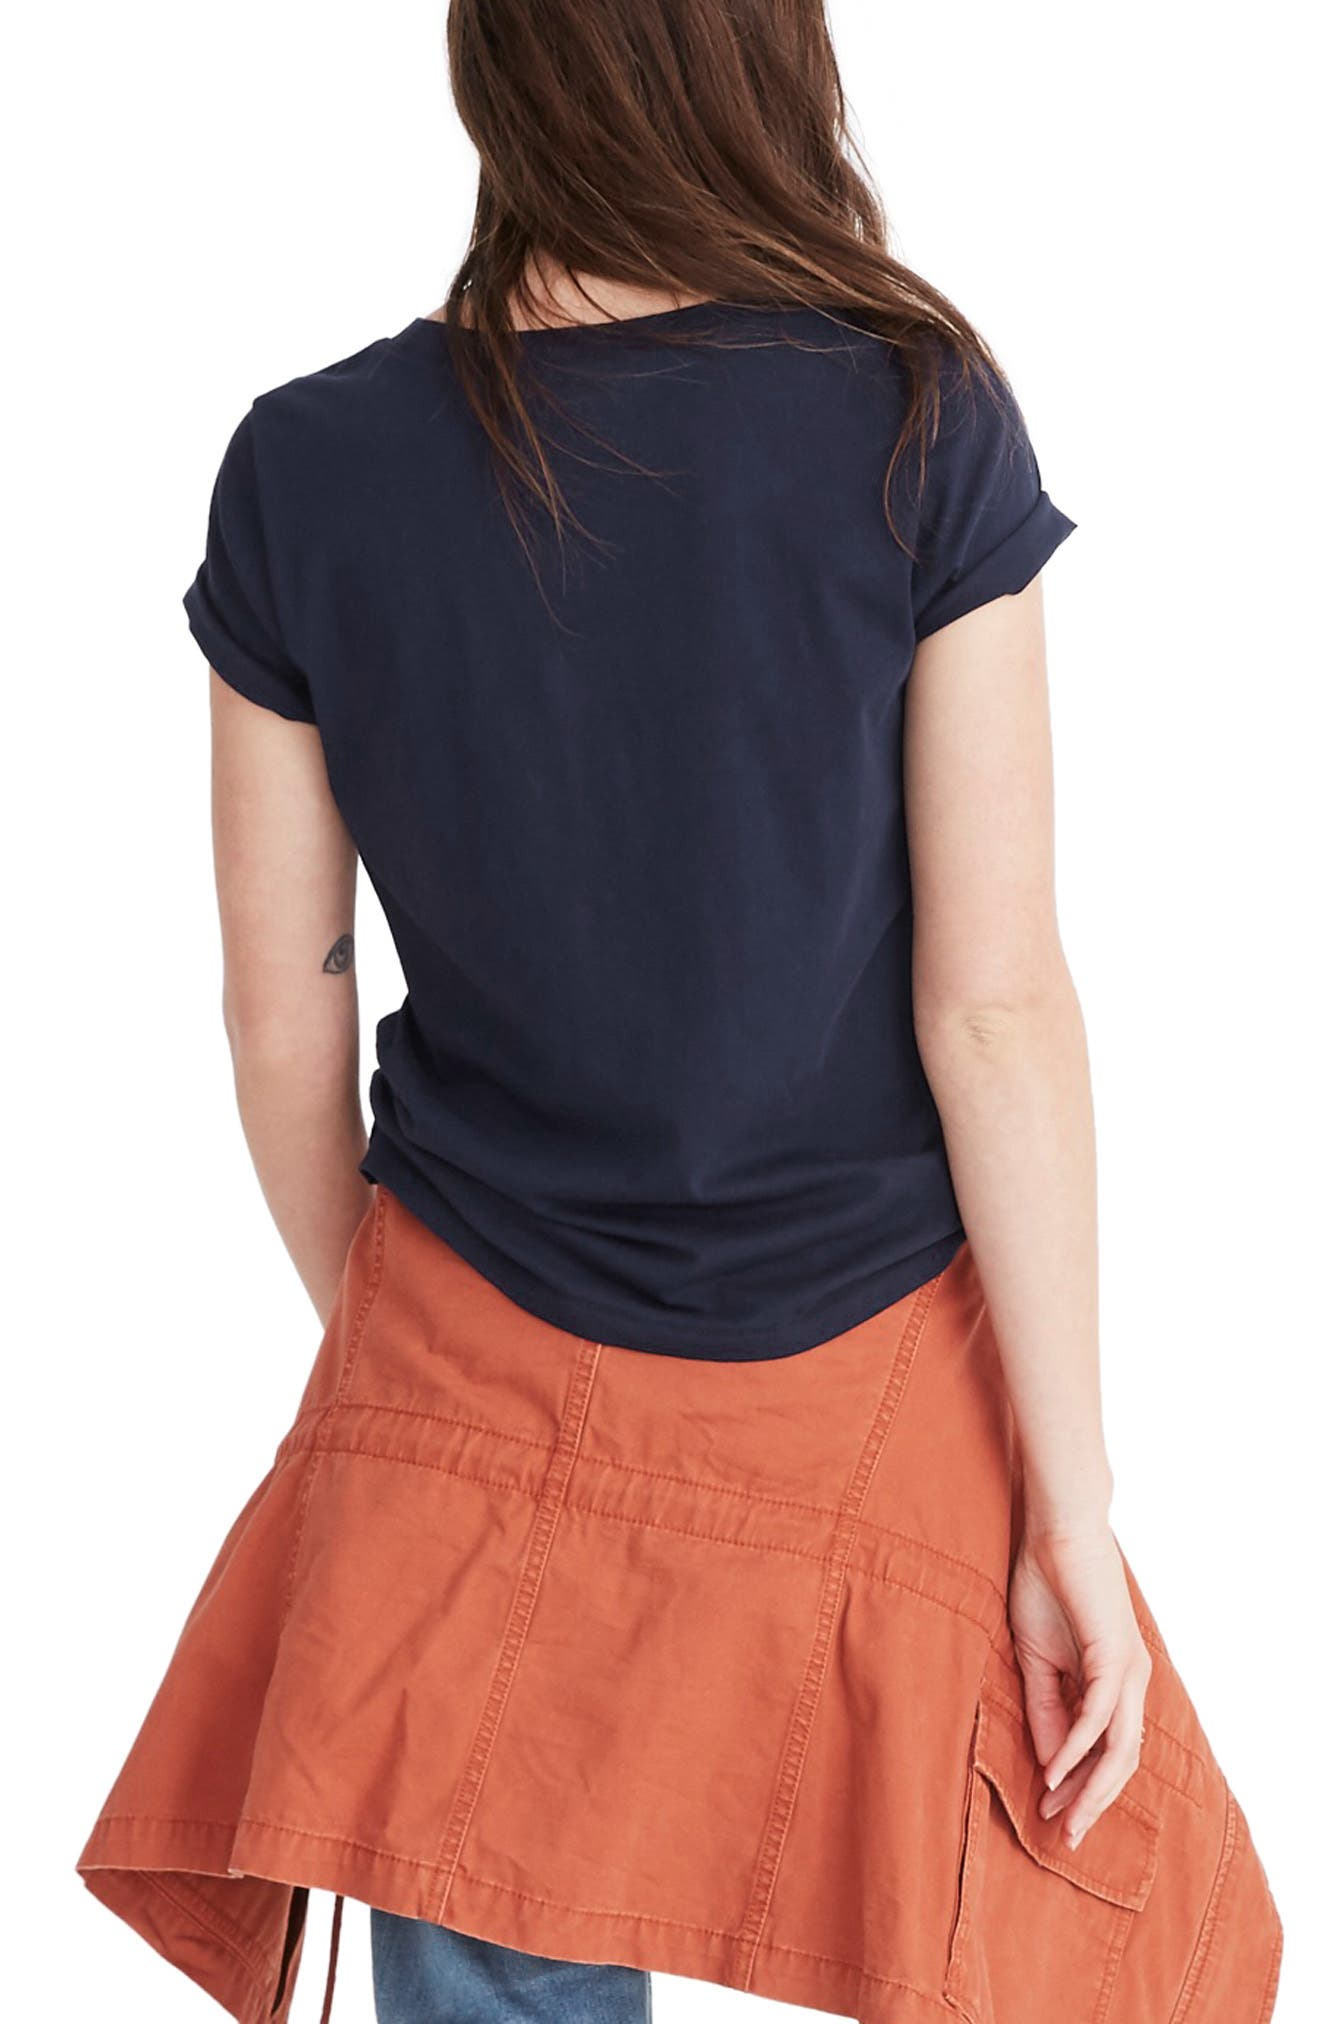 MADEWELL, Northside Vintage Tee, Alternate thumbnail 2, color, JUNIPER BERRY